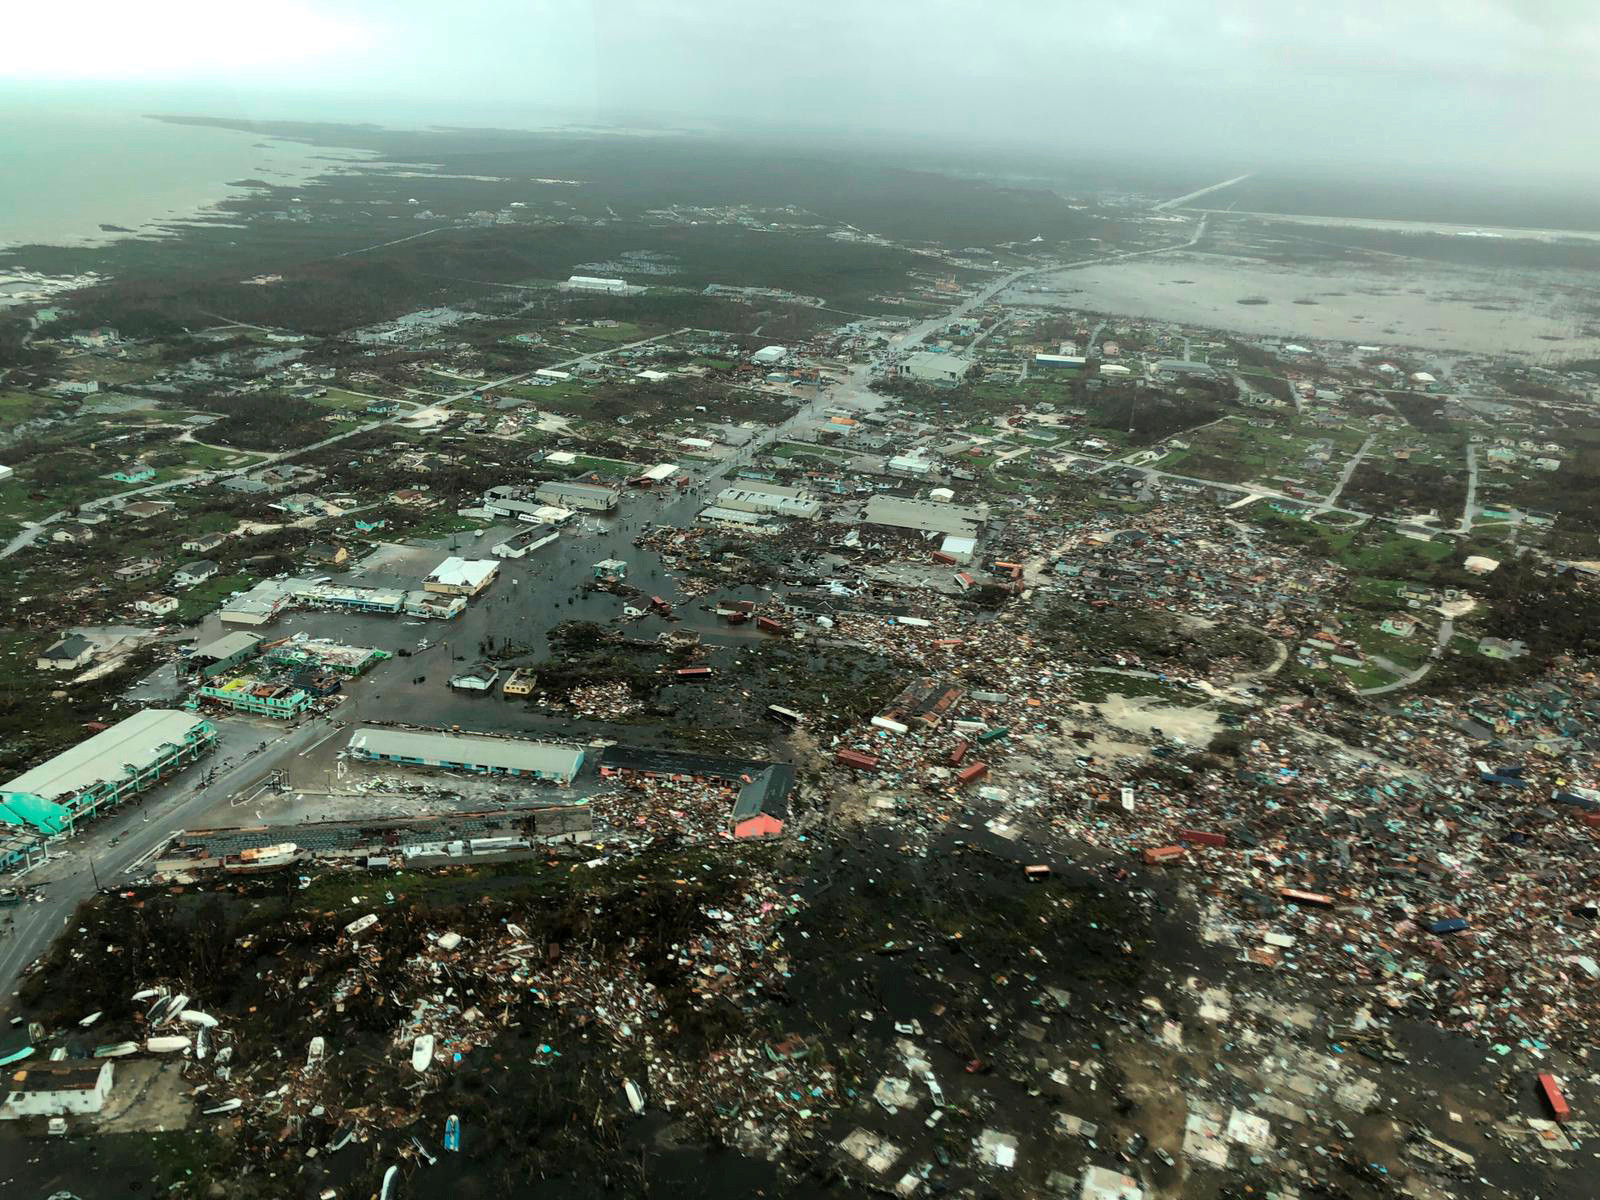 Homes have been destroyed by Hurricane Dorian